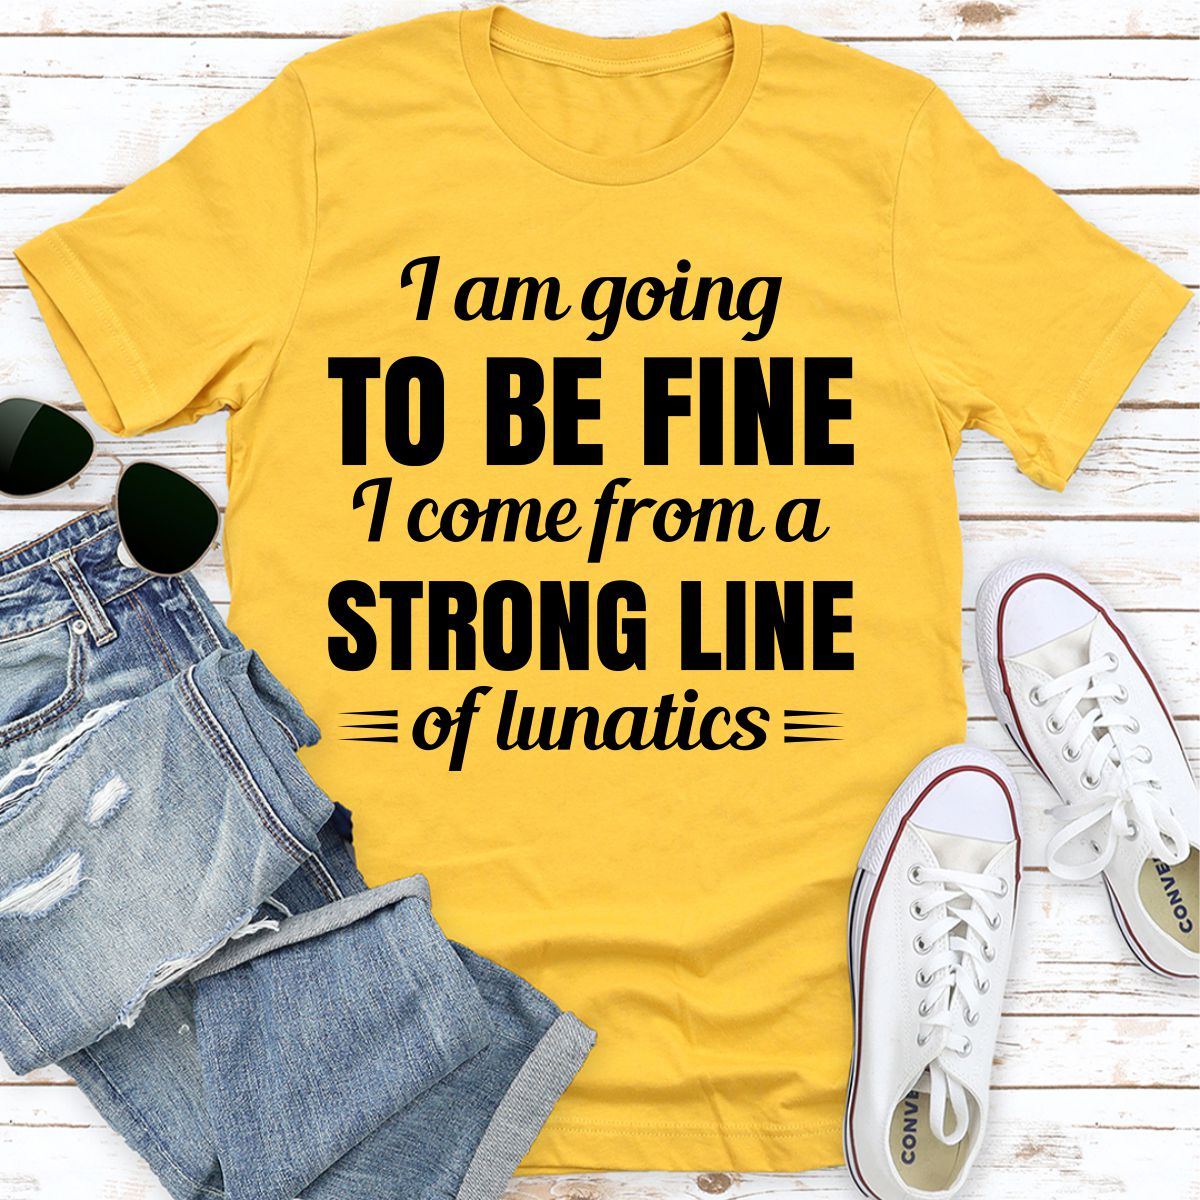 I Am Going To Be Fine I Come From A Strong Line Of Lunatics (Gold / Xl)